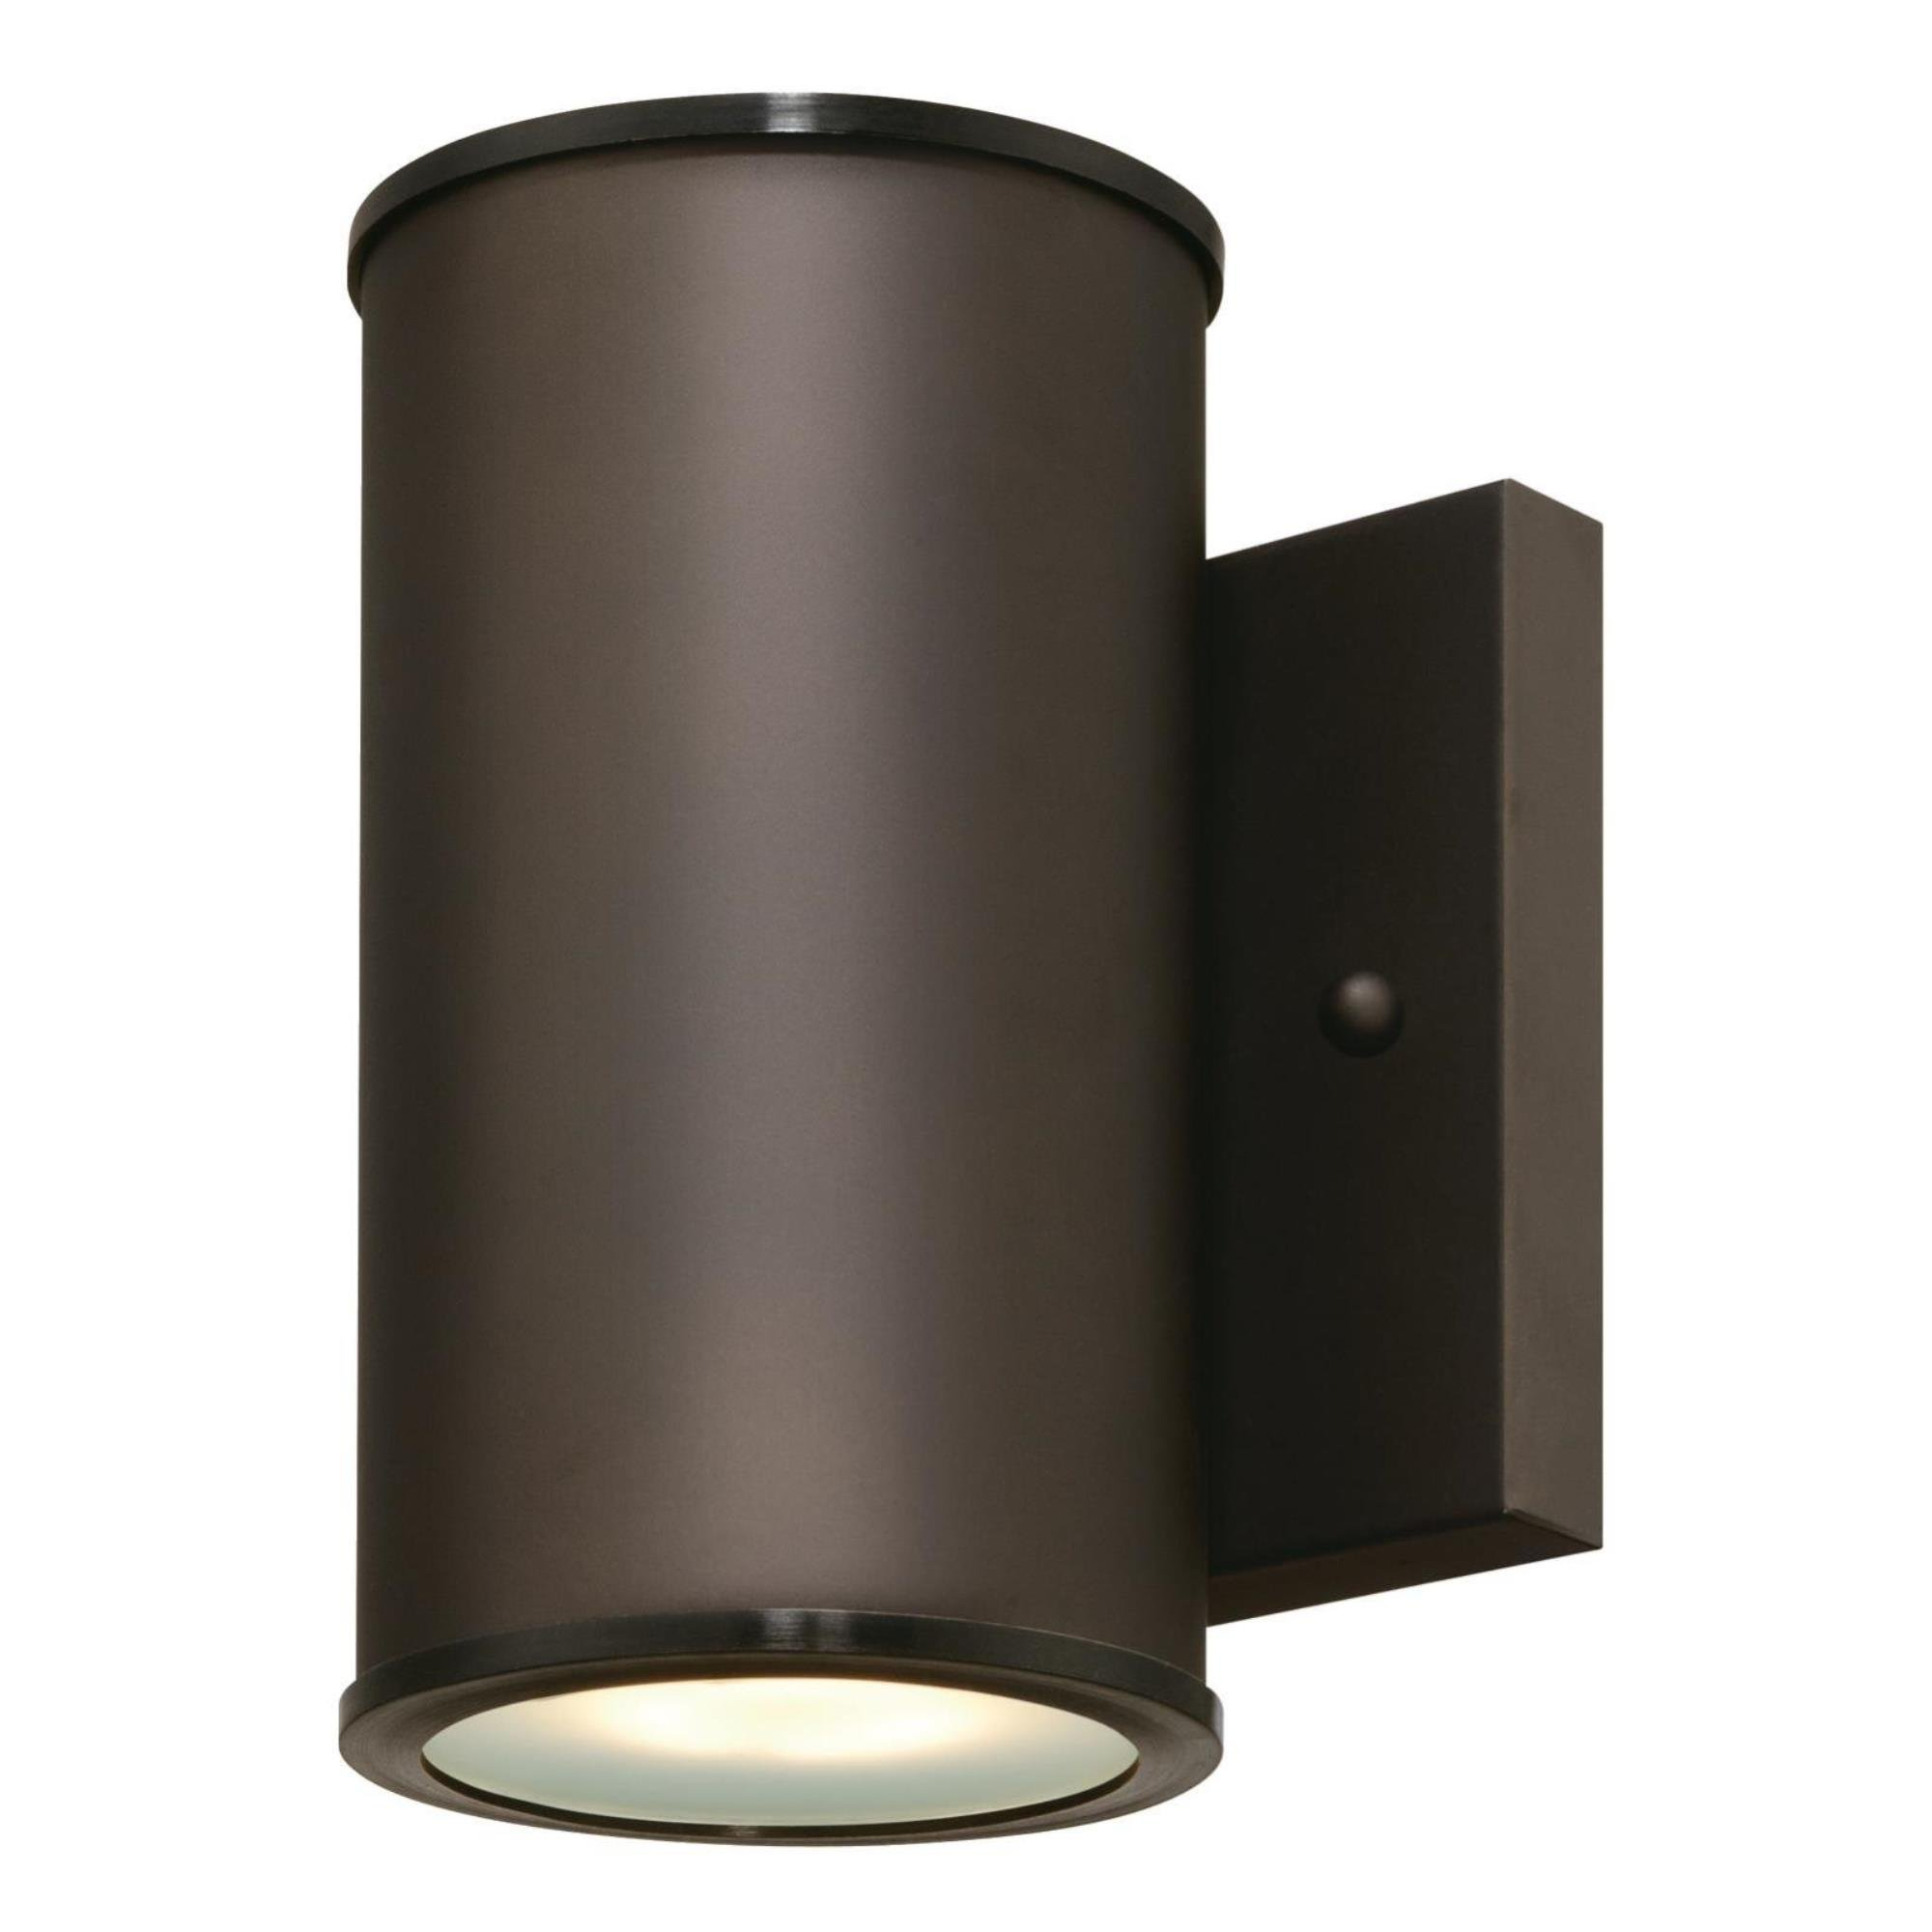 Westinghouse 6315600 Mayslick One-Light LED Outdoor Wall Fixture with Frosted Glass Lens, Oil Rubbed Bronze